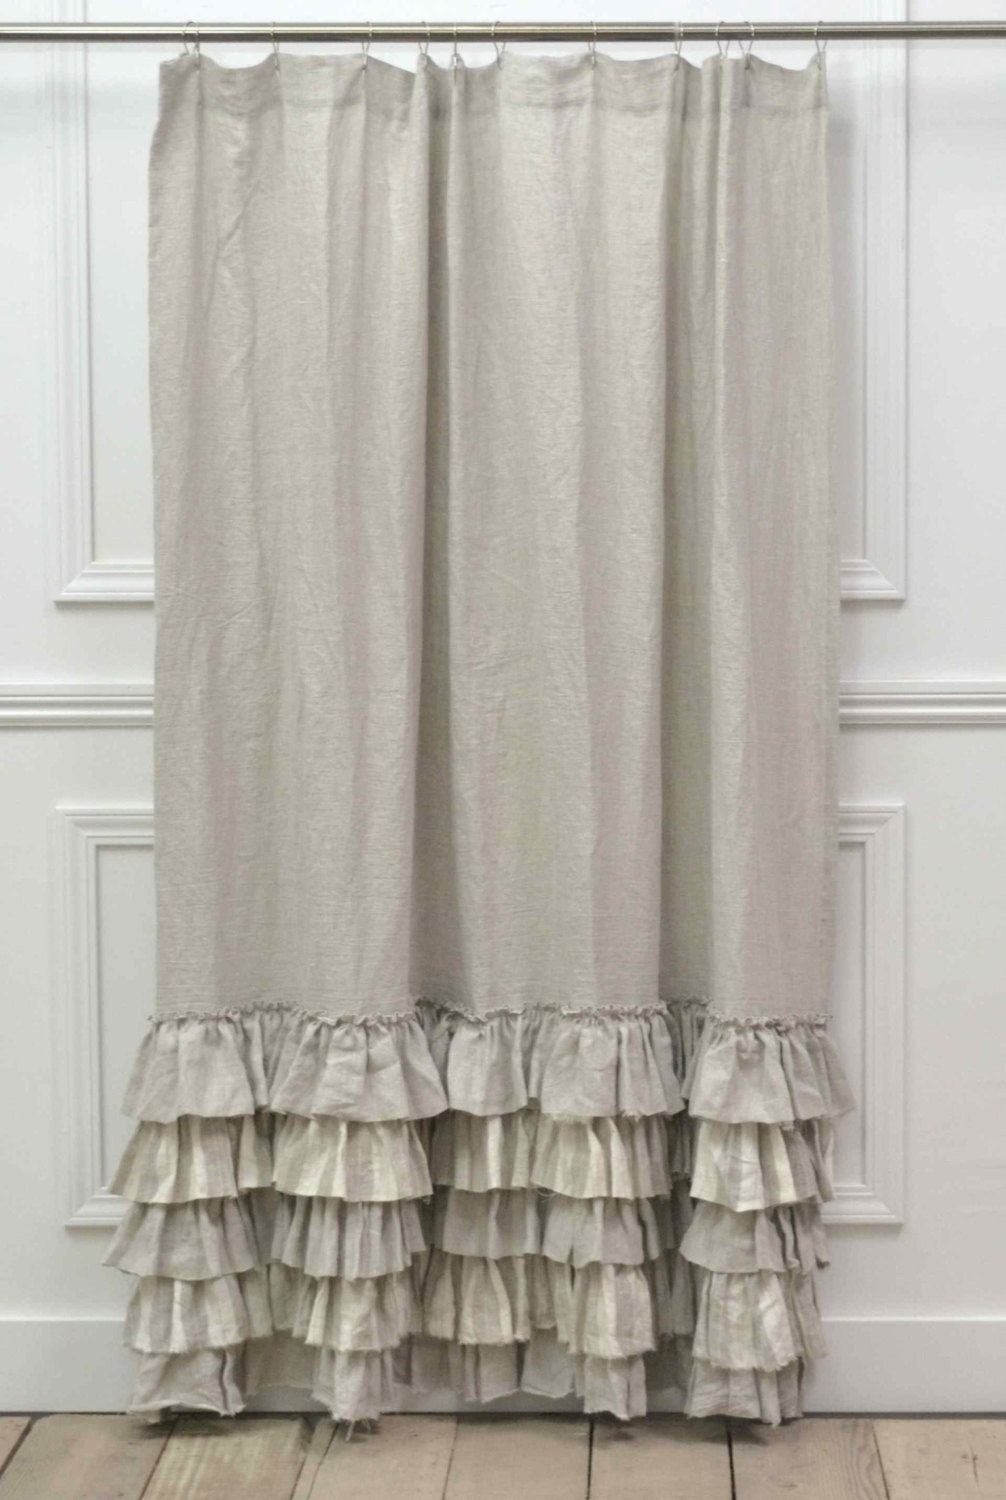 55 Off Chateau Blanc Sophie Shower Curtain Neutral 72 X 76